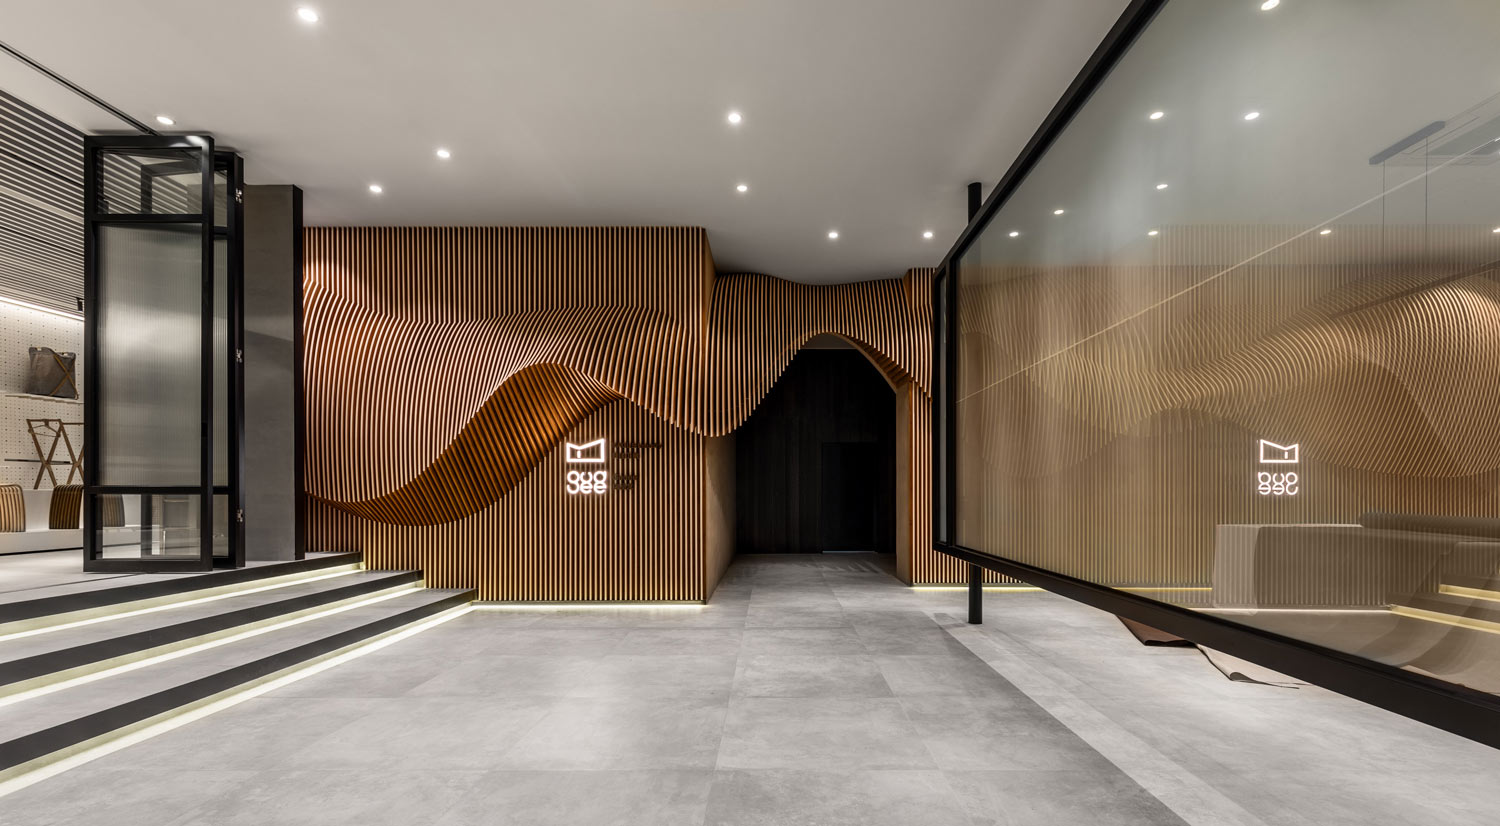 Tung Tsan Lee Gudee Headquarters In Shangai The Dialogue Between Fabric And Bamboo